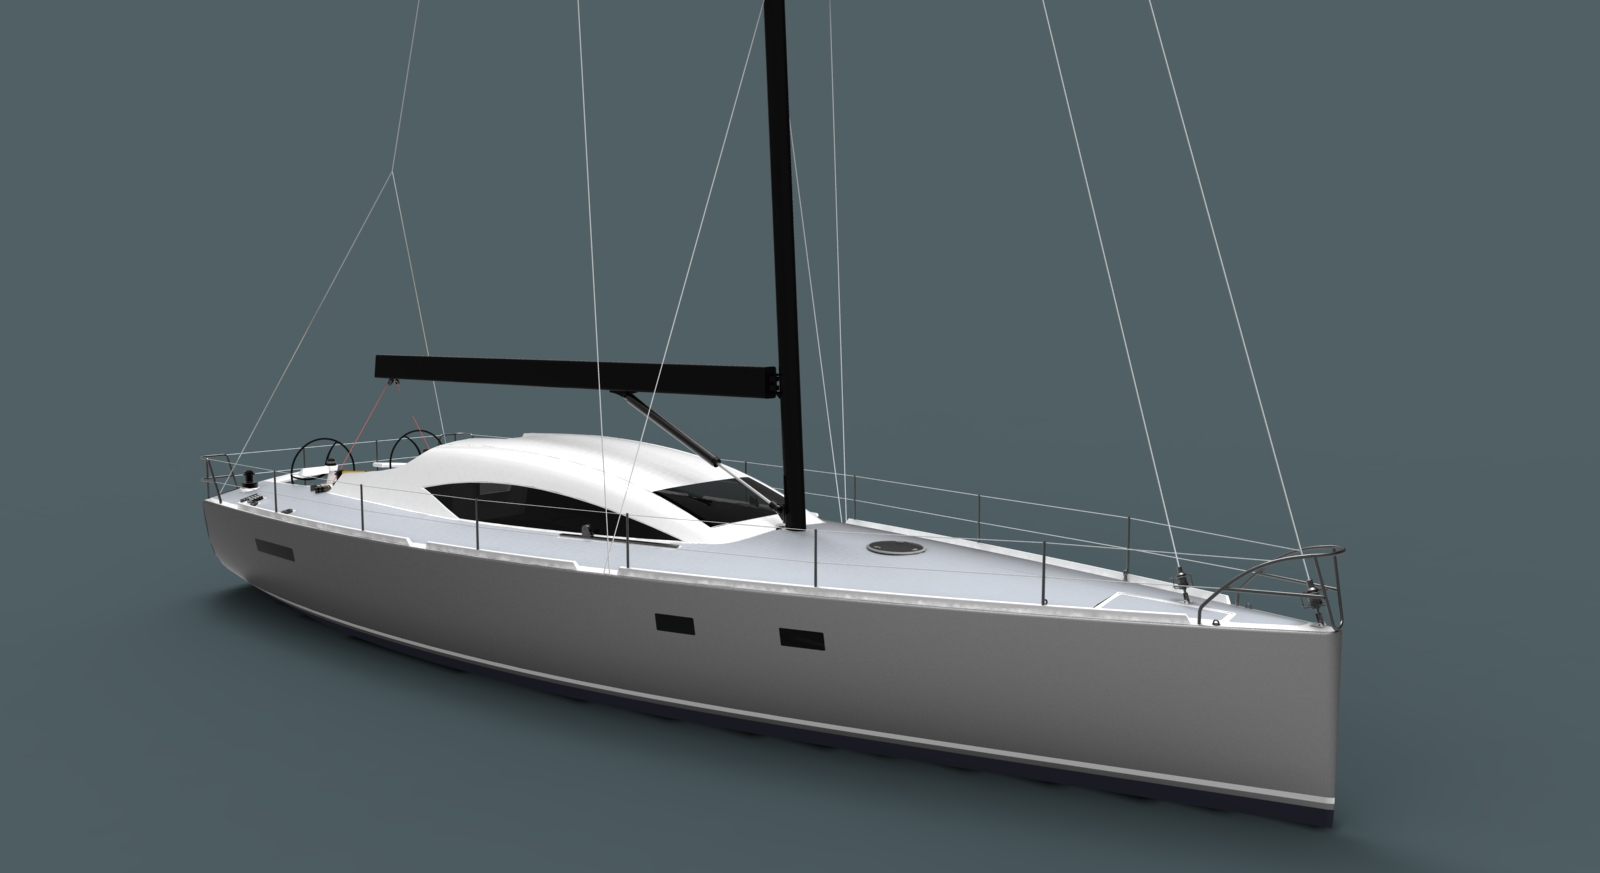 This is an Owen Clarke 15m custom blue water performance cruising yacht design with lifting keel for comfortable trans ocean sailing. This yacht is suitable for construction in either aluminium alloy or composite materials